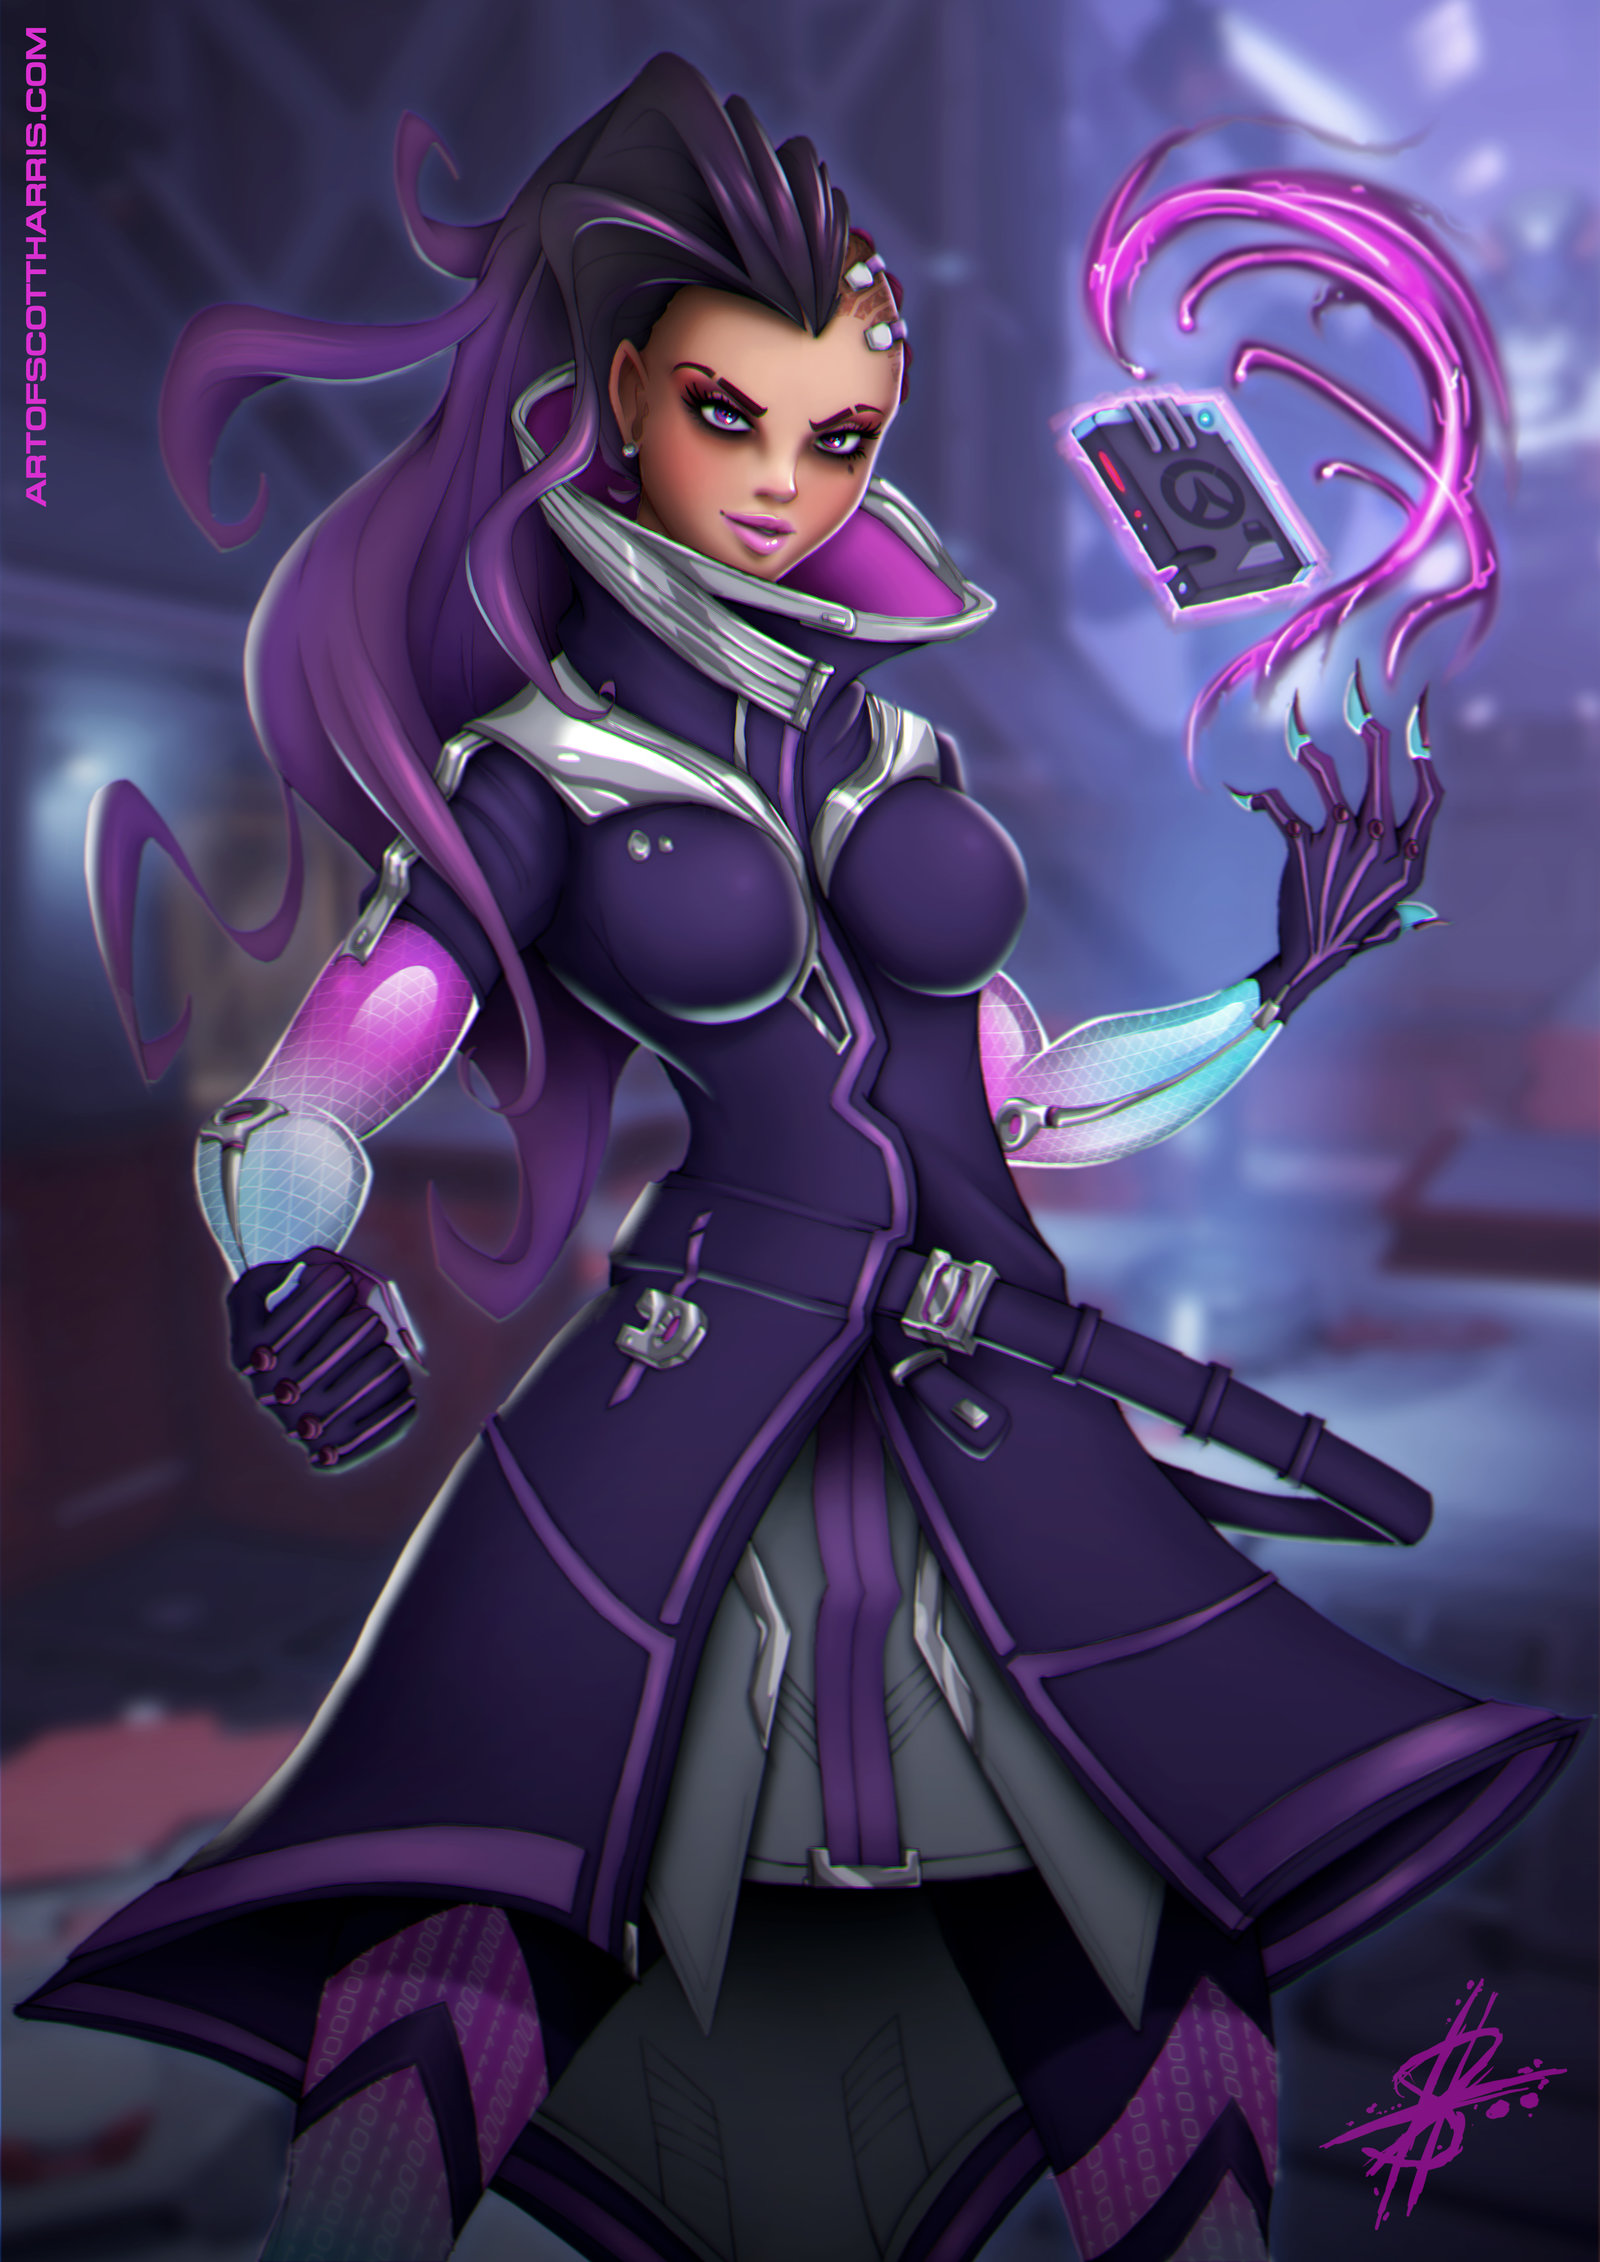 Anime Hairstyles Cosplay >> Overwatch Sombra – Sexy Fan-Art, Anime, CosplayGame playing info